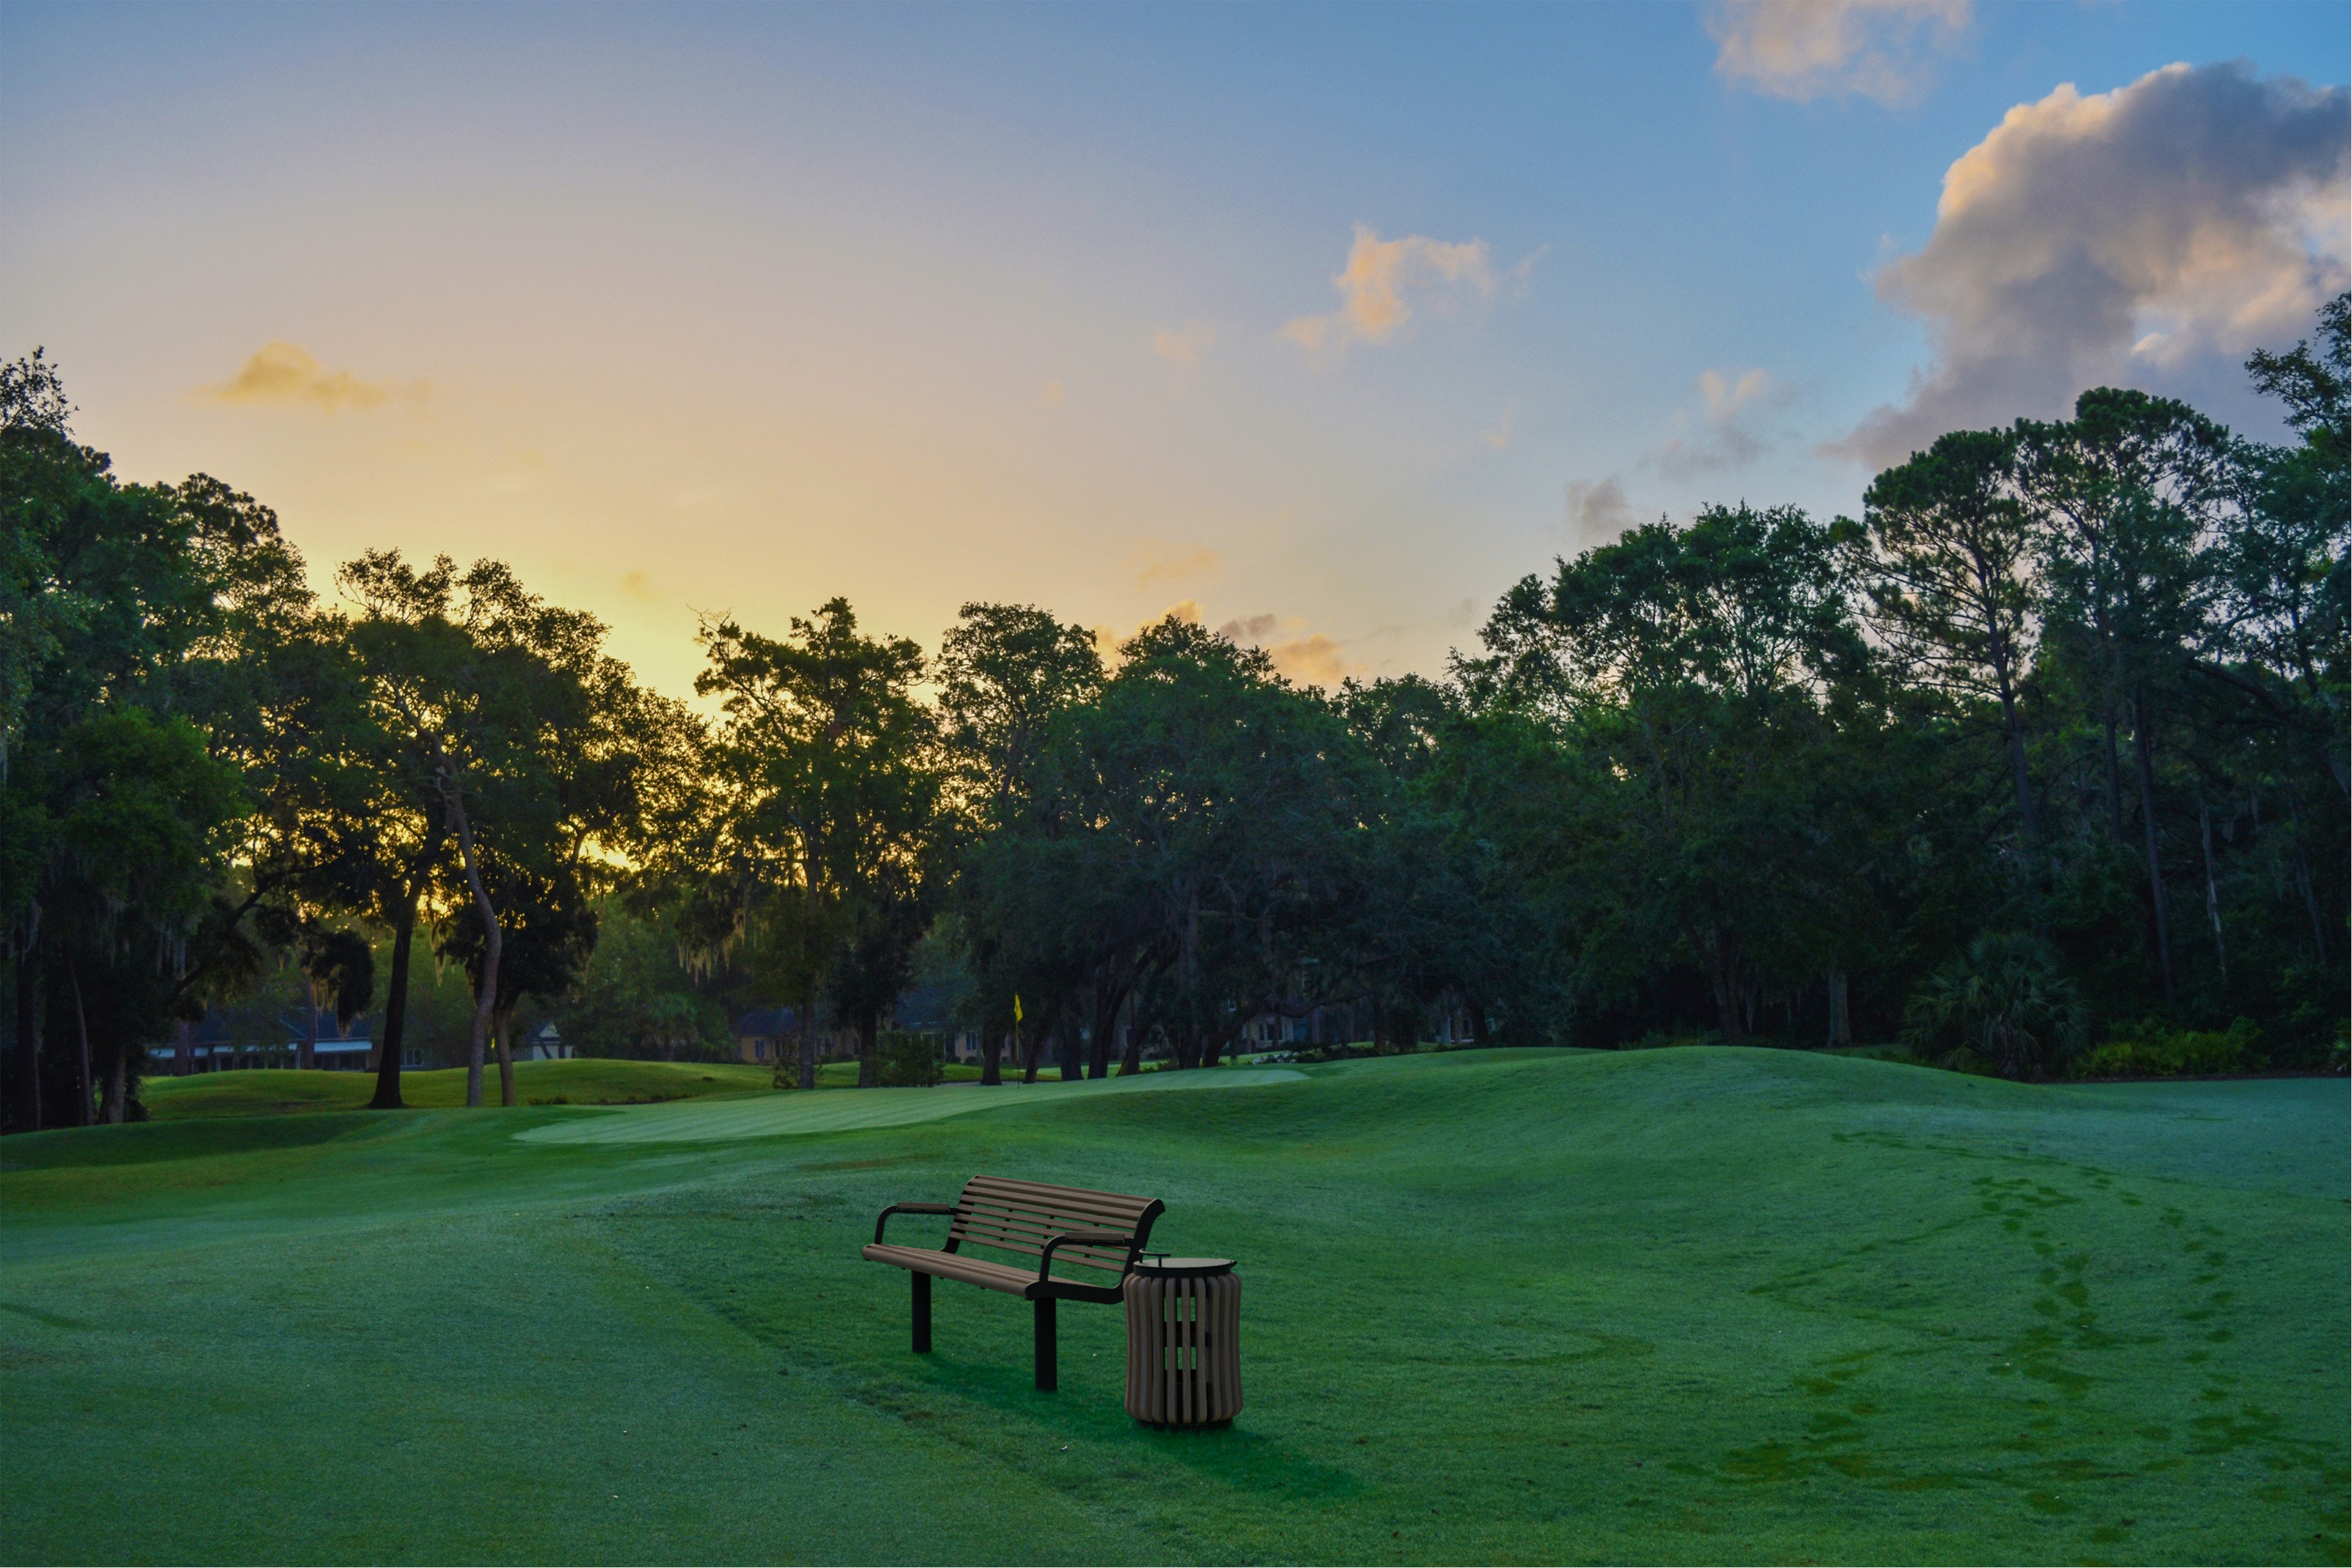 Instinct-Backed-Bench-golf-course-2-1